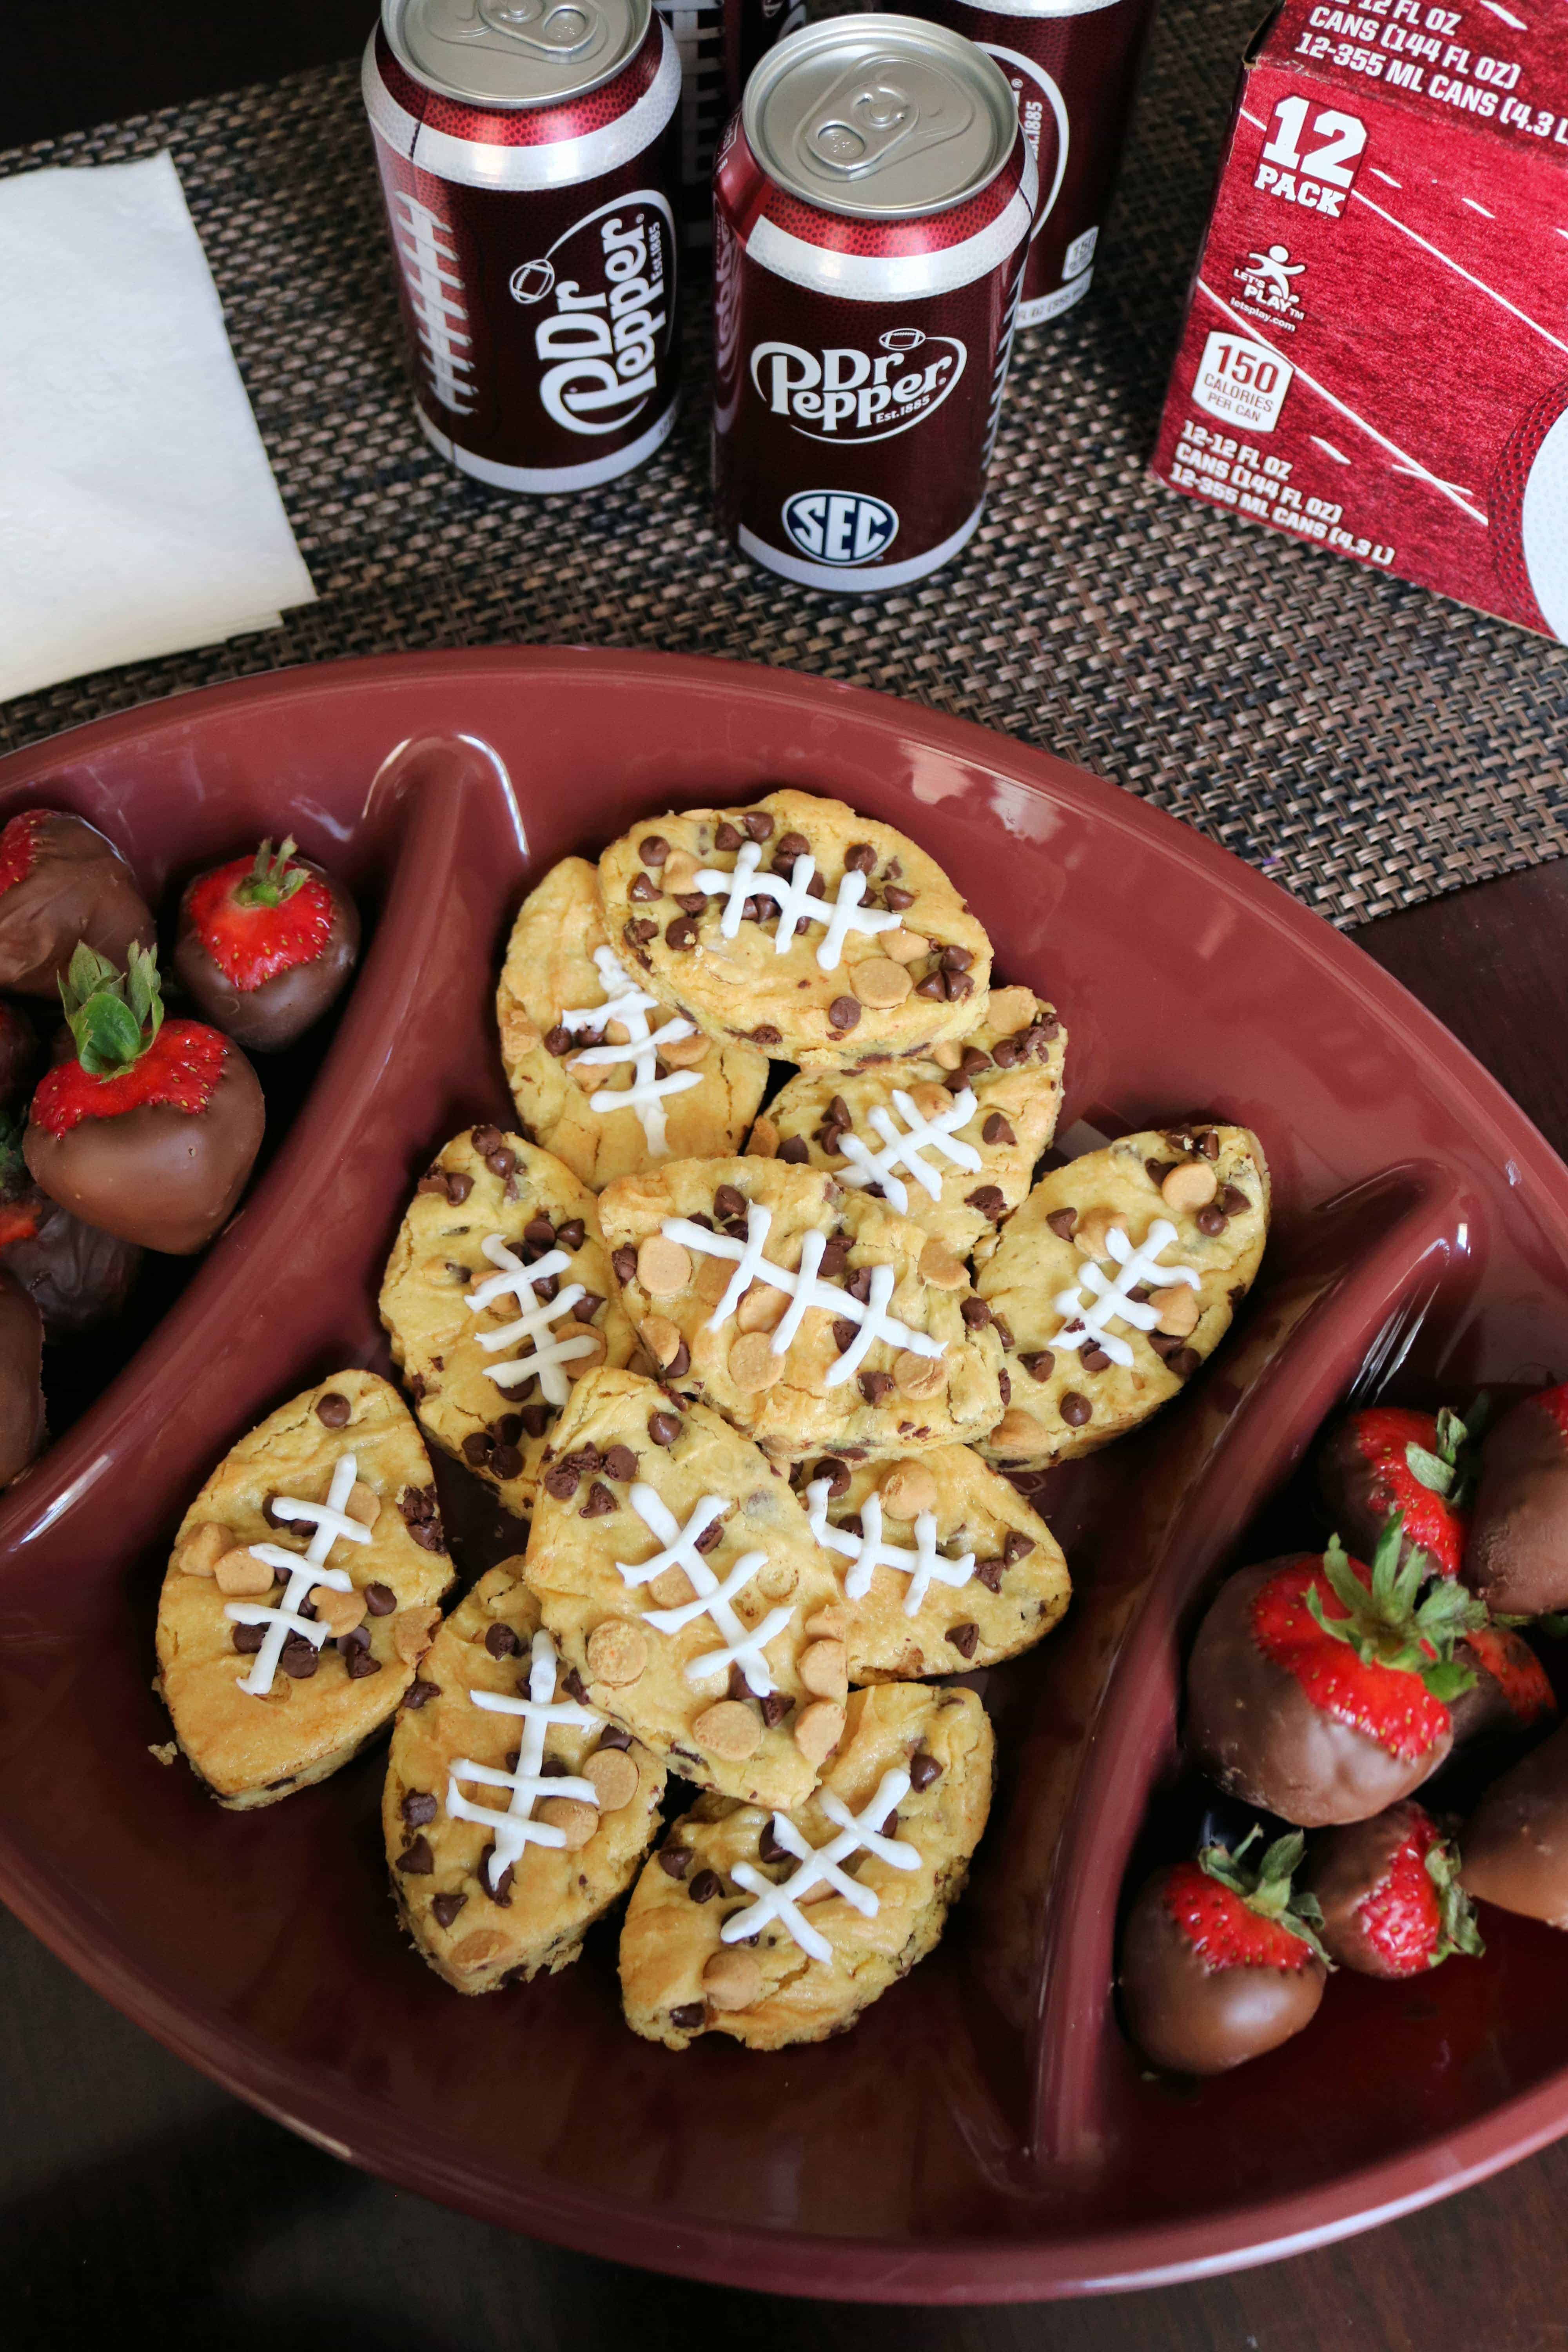 Looking for a yummy and easy tailgating dessert for your next football party? Then try these Easy Football Chocolate Chip Peanut Butter Blondies! This is the best blondies recipe around and guests will love the cute football shape! Pair them with some delicious Dr Pepper® from Publix, chocolate covered strawberries, and you've got the perfect game day menu!#ad #MyPublixWin #DrPepper #blondies #peanutbutterblondies #blondiesrecipe #footballdesserts #tailgating